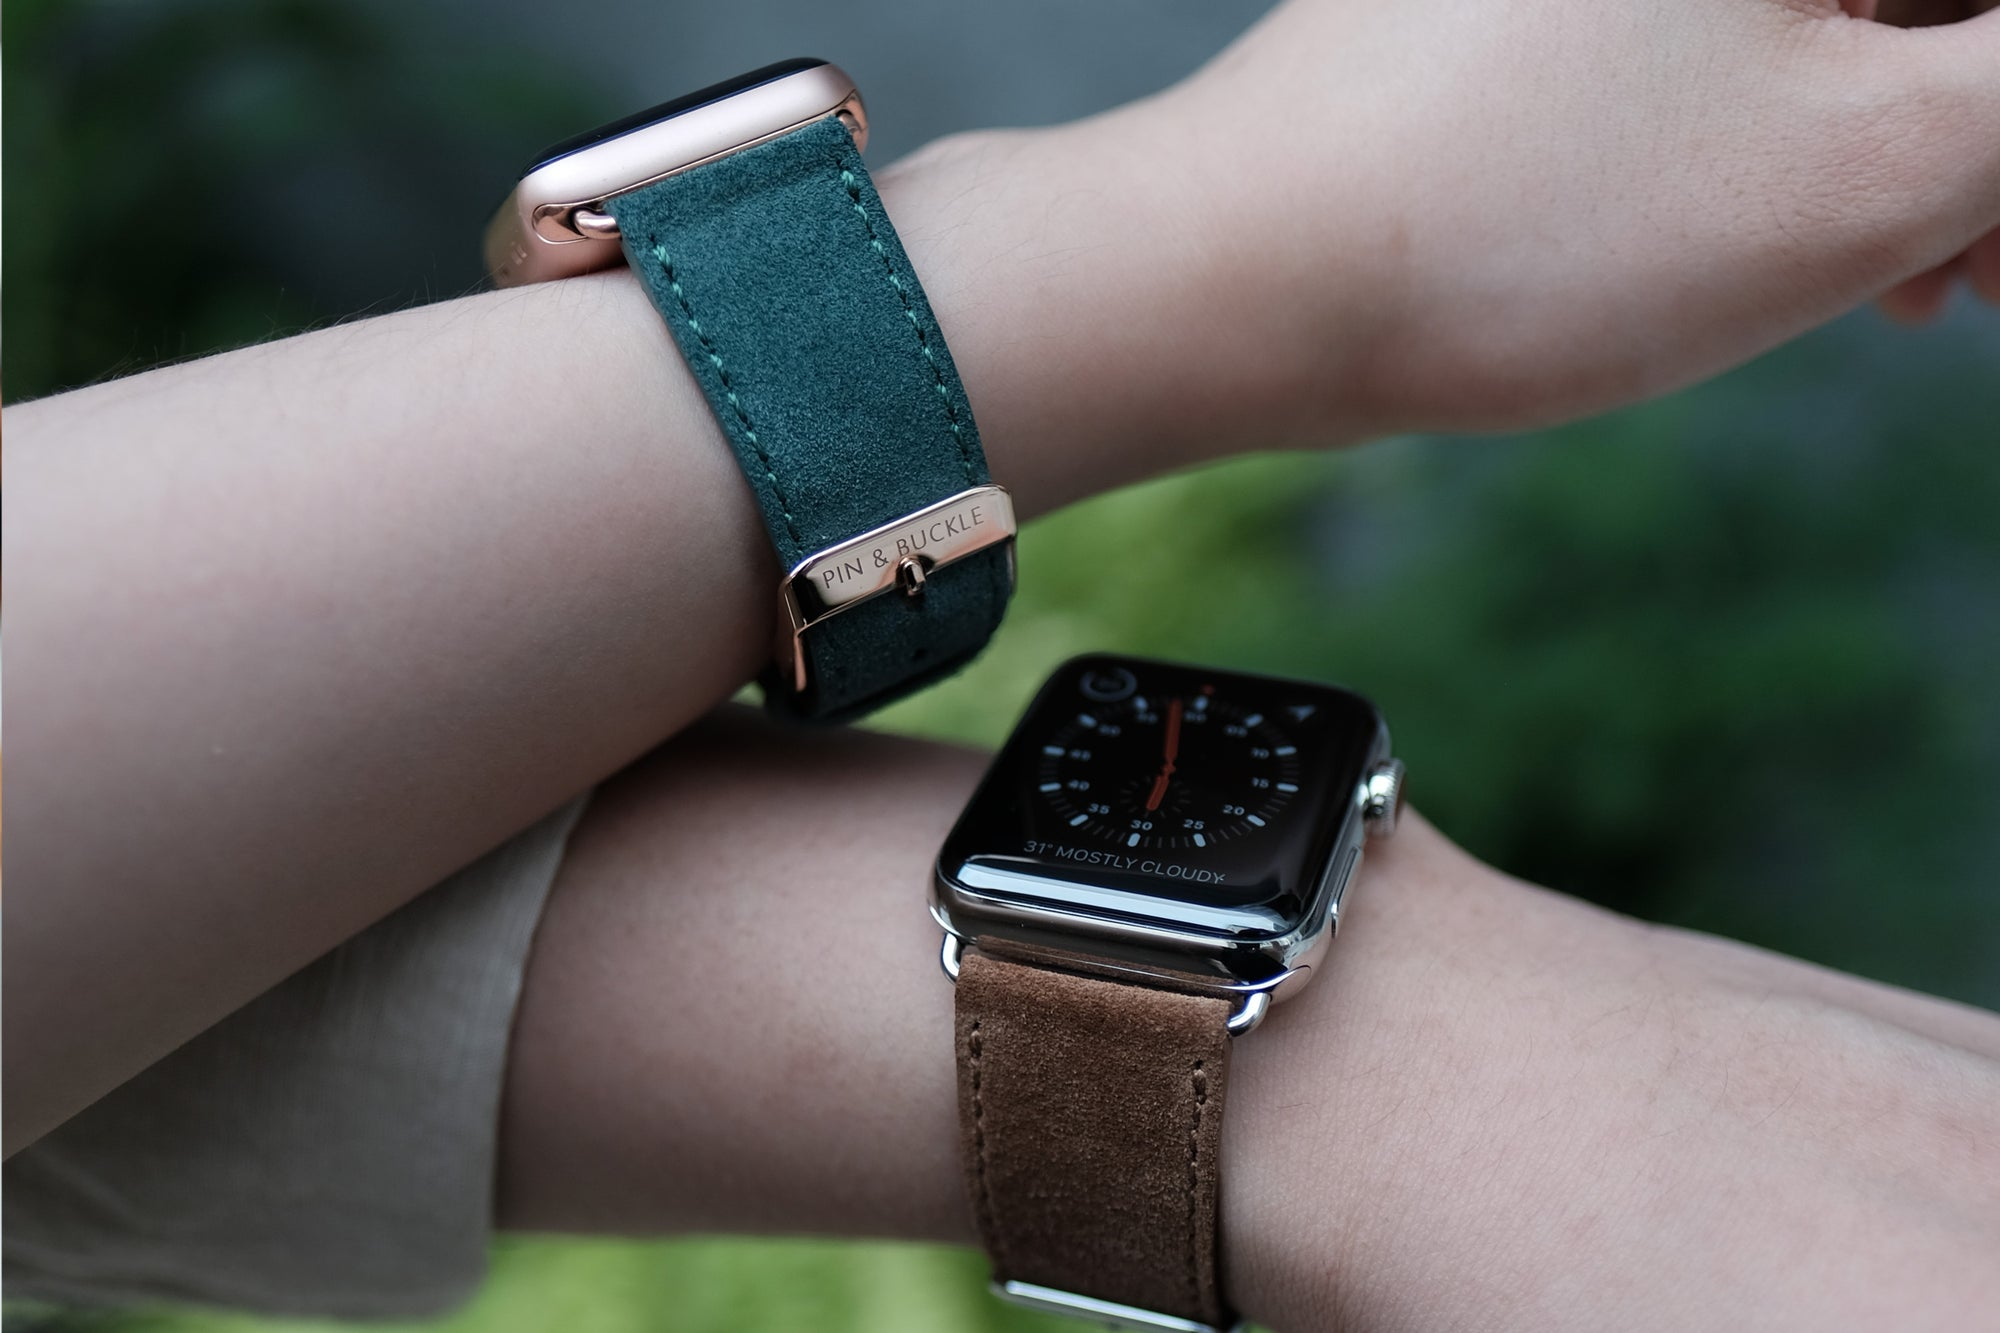 Suede Apple Watch Bands by Pin & Buckle - Velour - Pine and Cognac